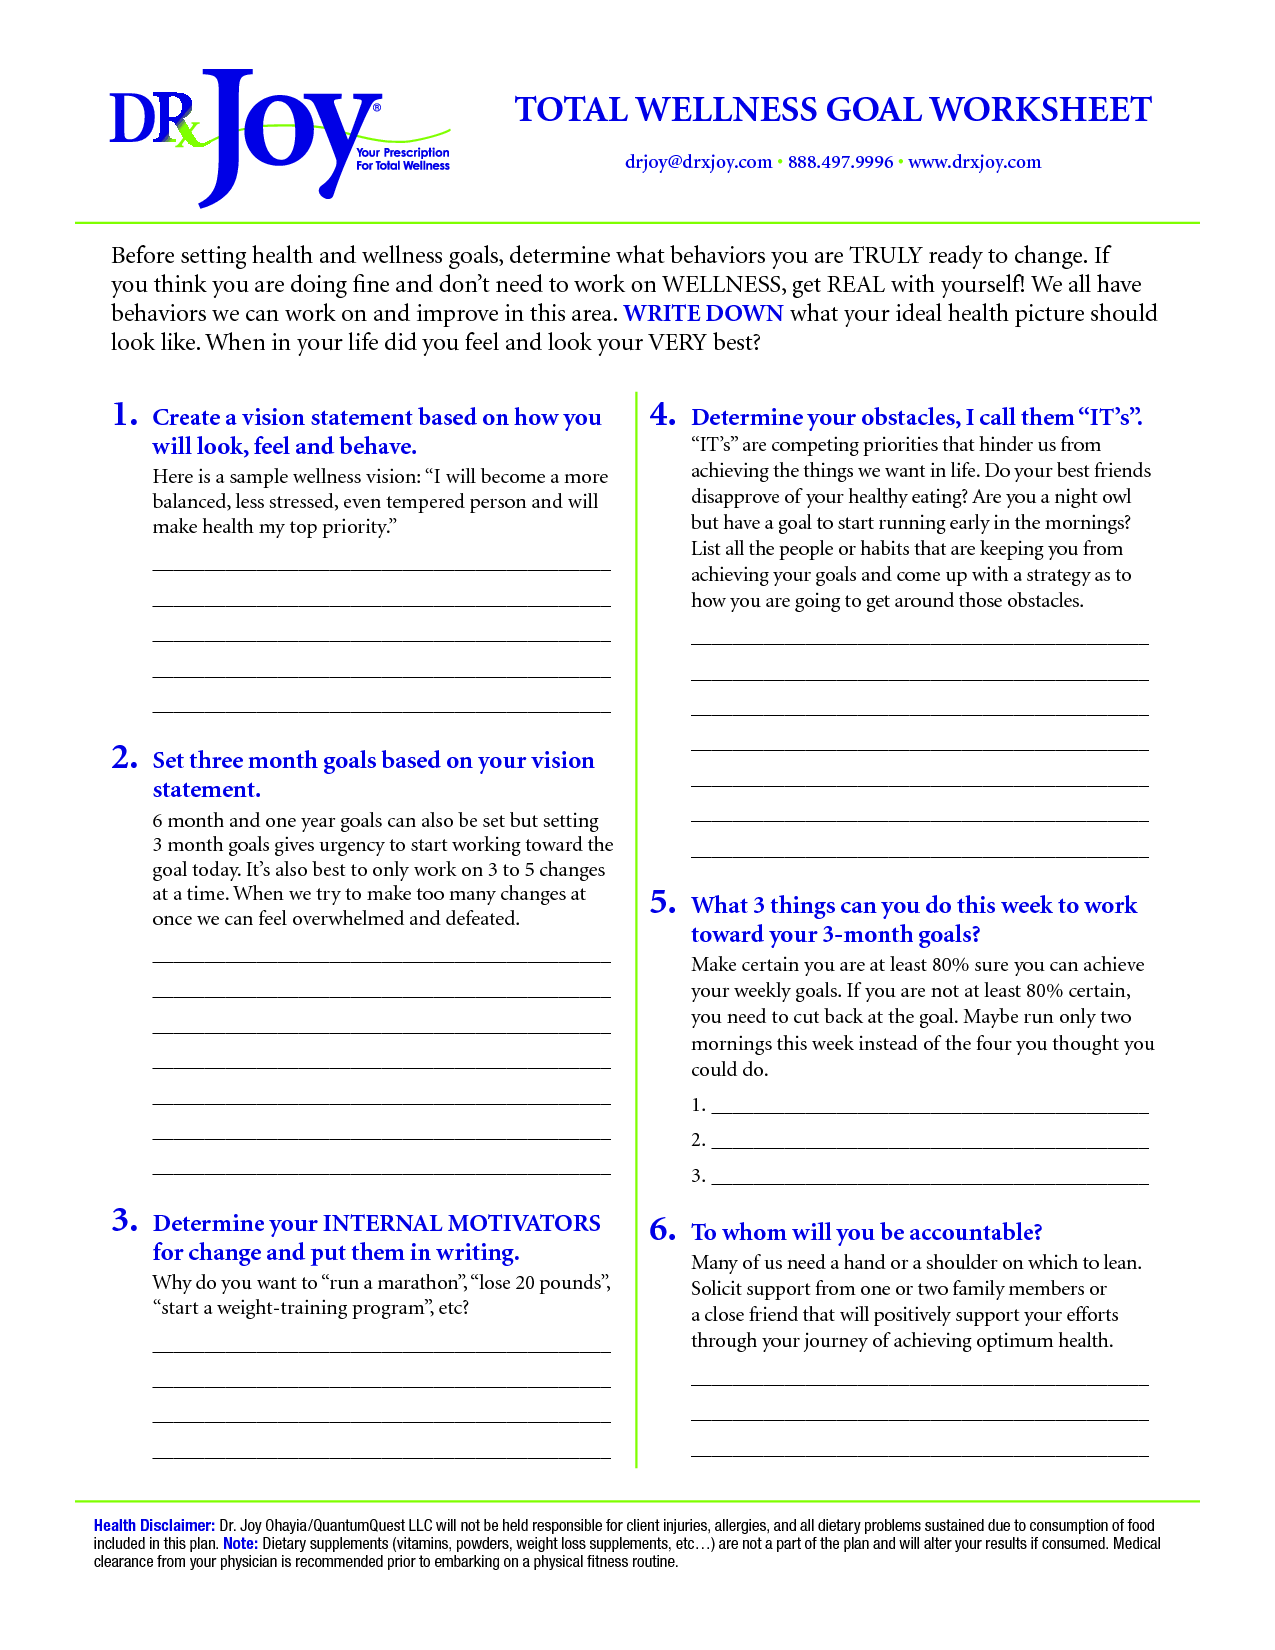 Free Total Wellness Goal Sheet